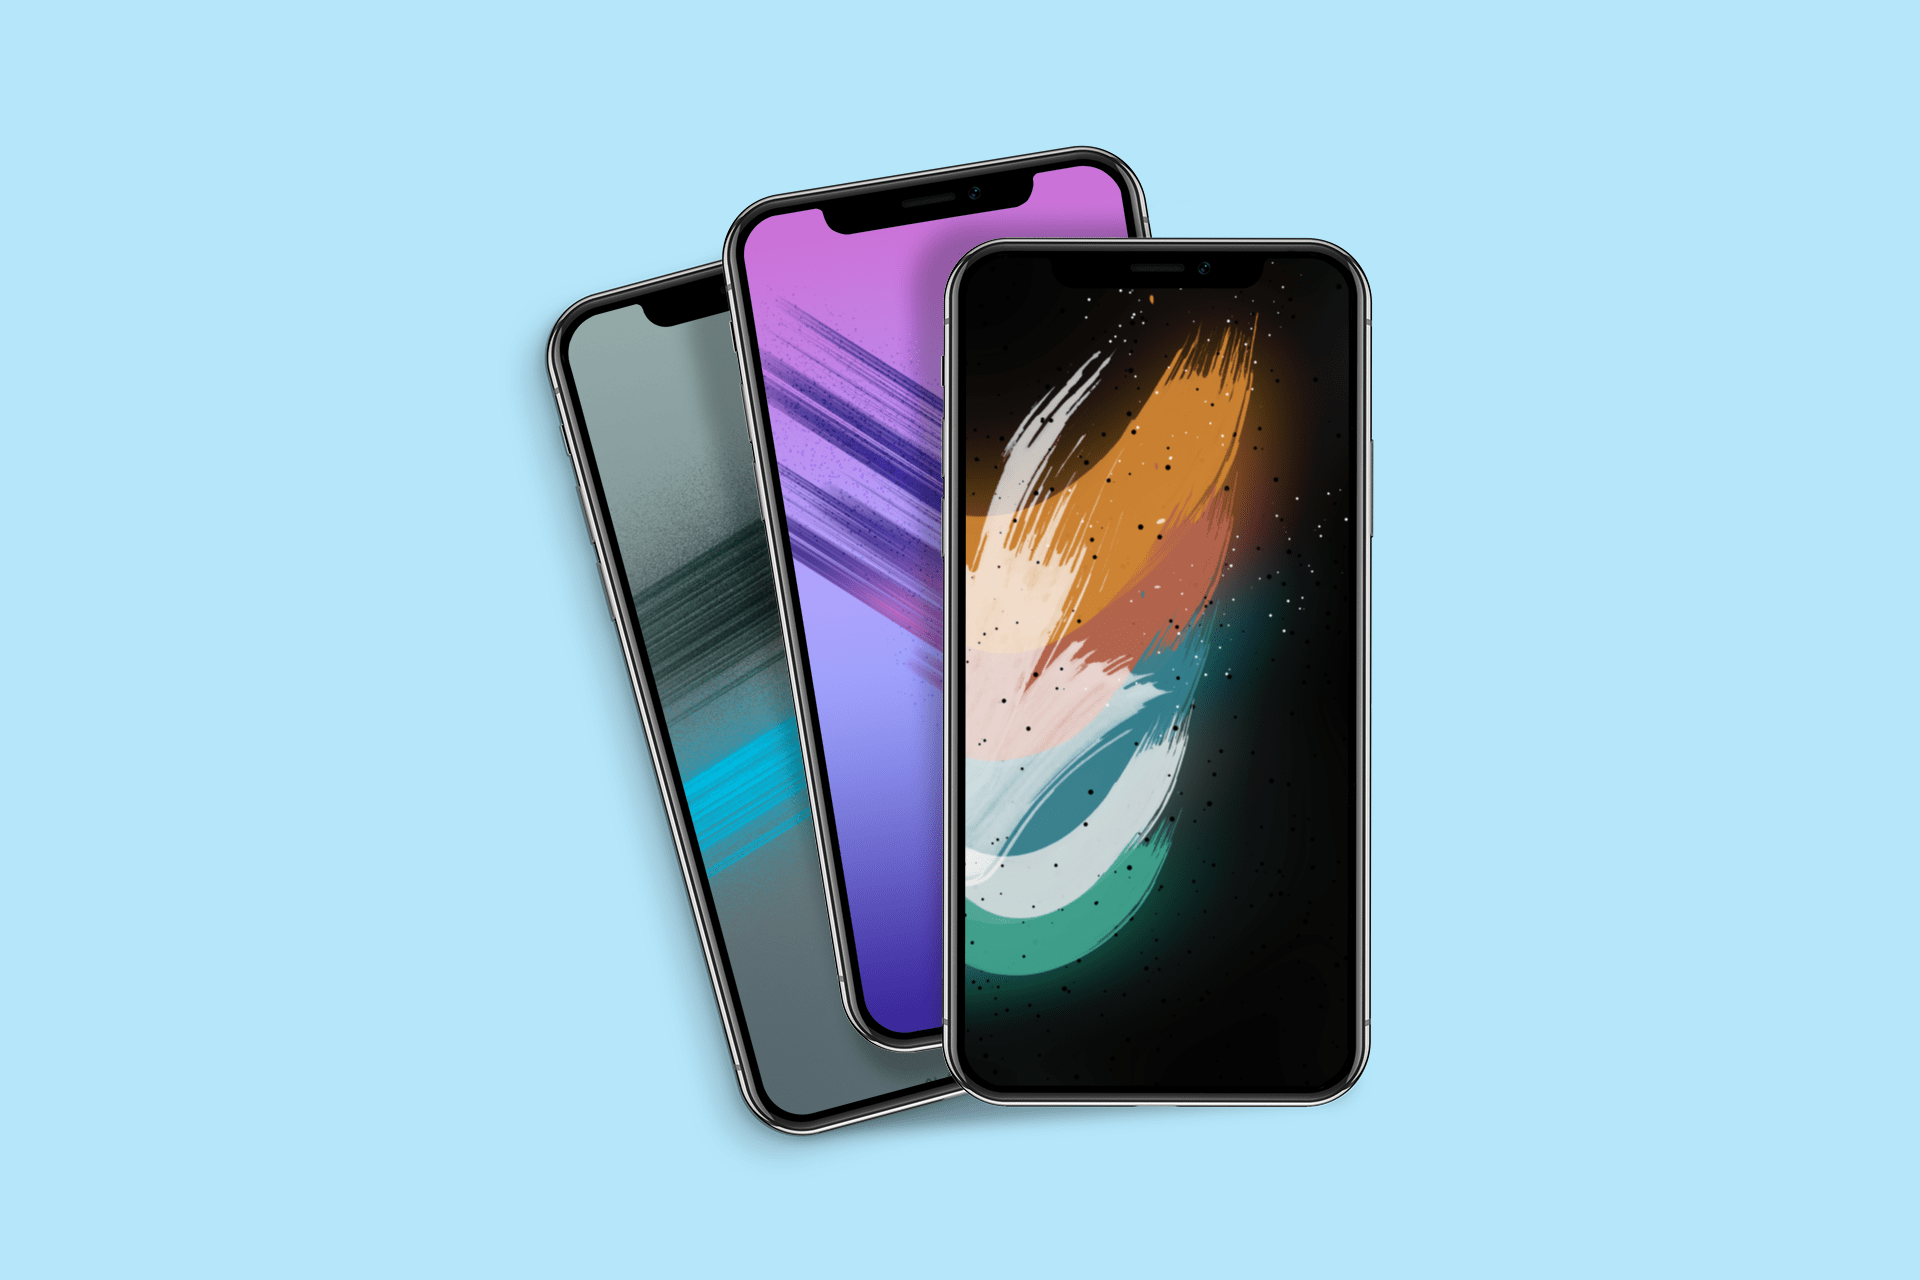 Abstract digital paint wallpapers iPhone alan140503 idownloadblog mockup